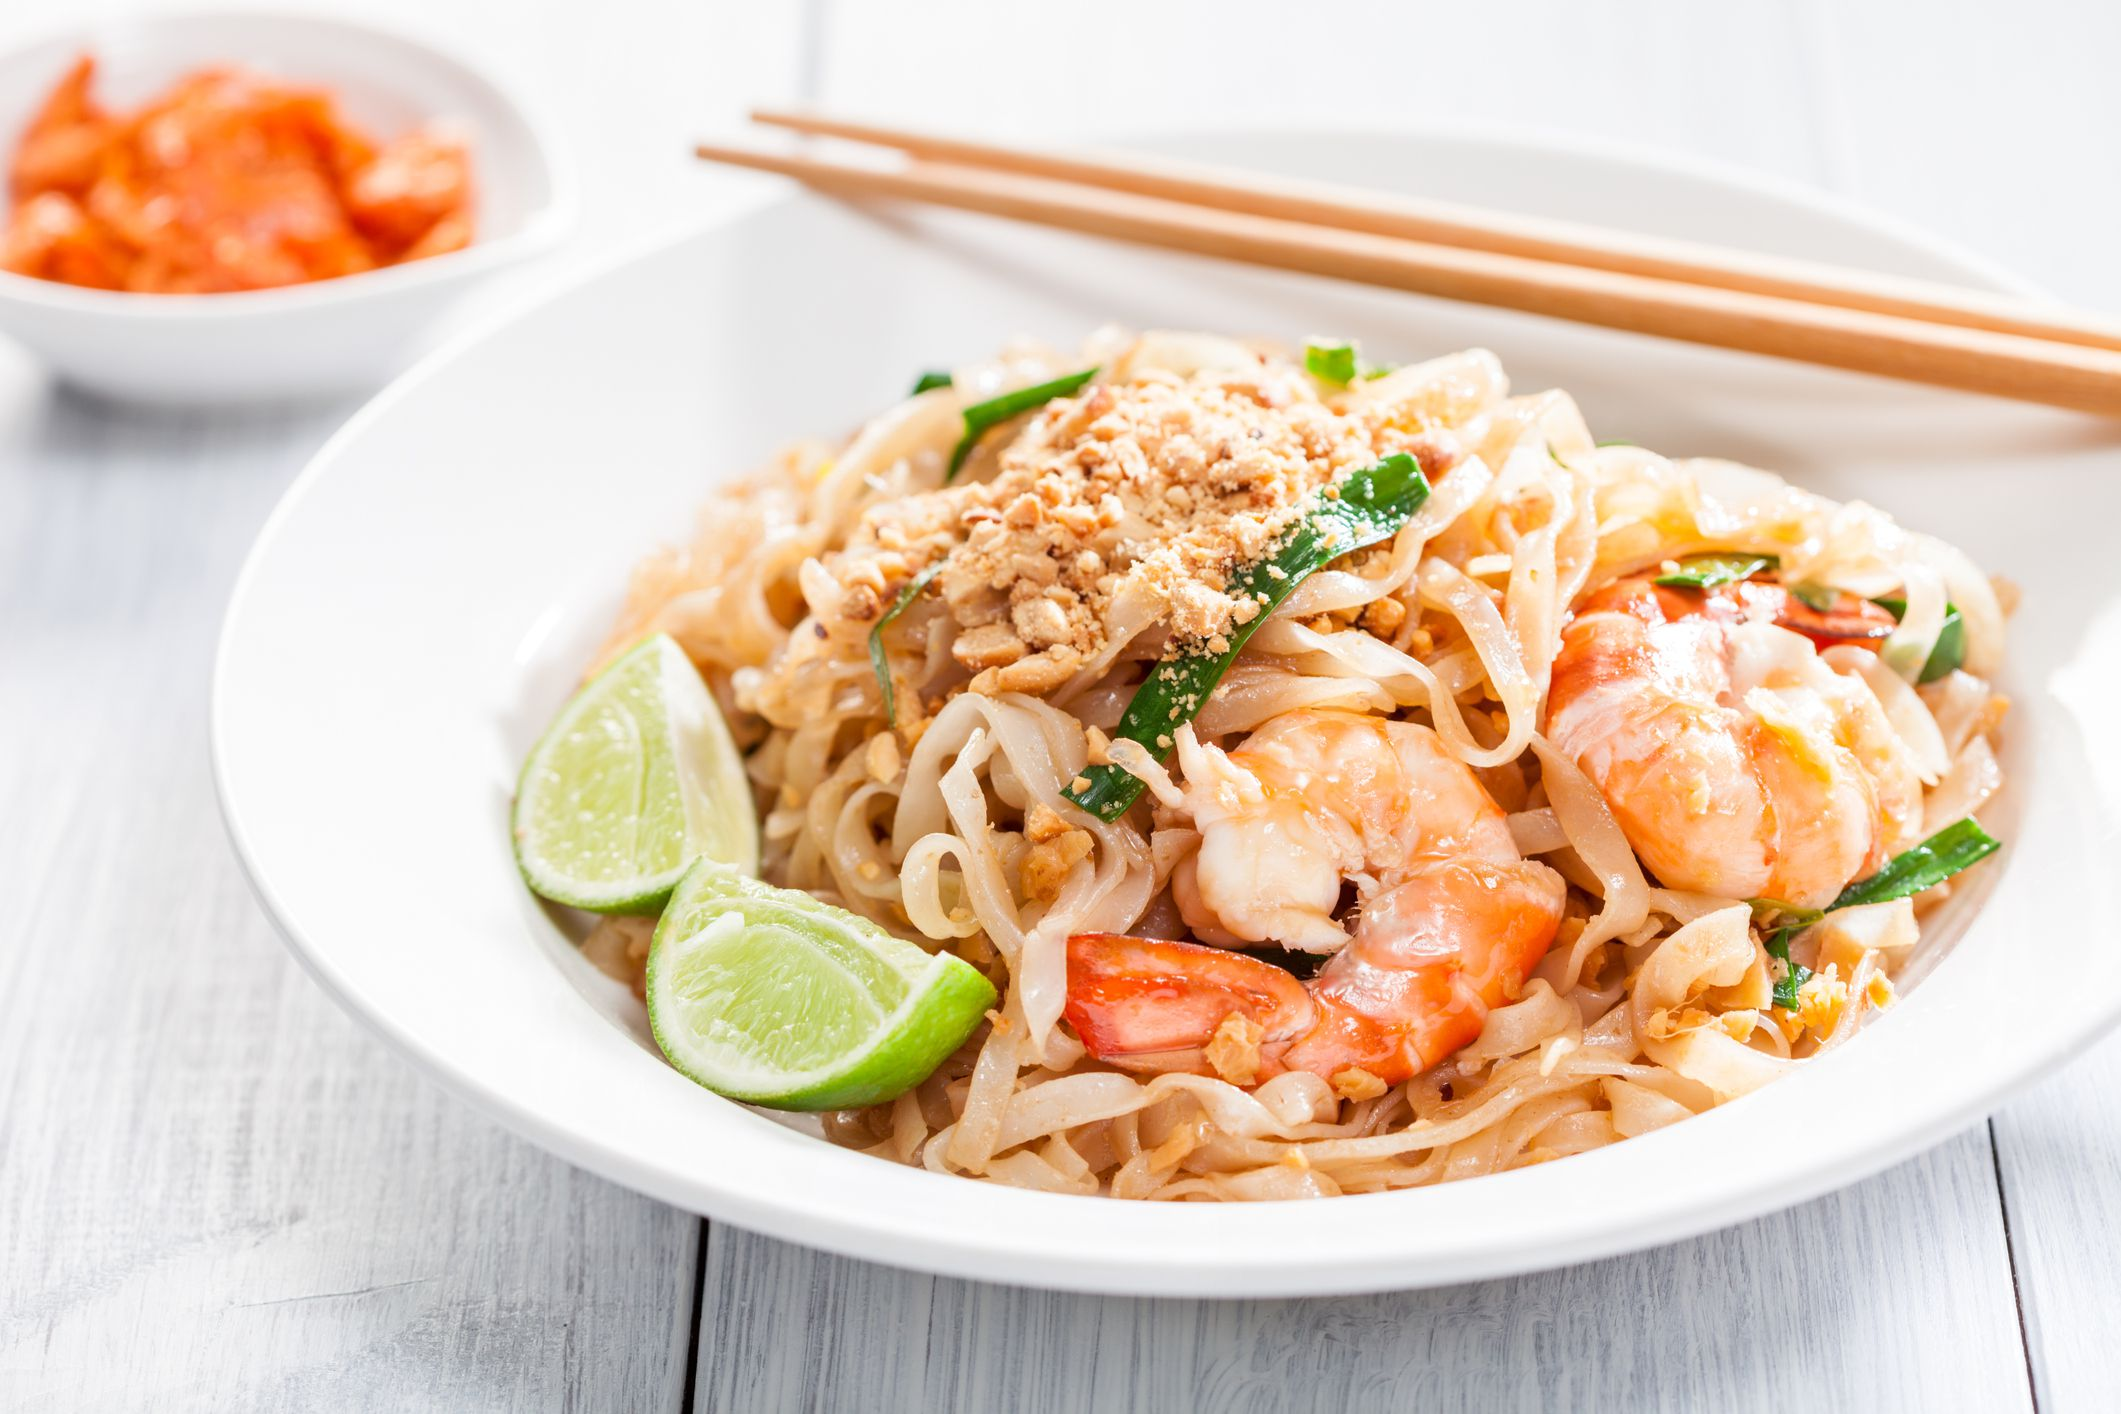 How to Make Perfect Pad Thai Noodles